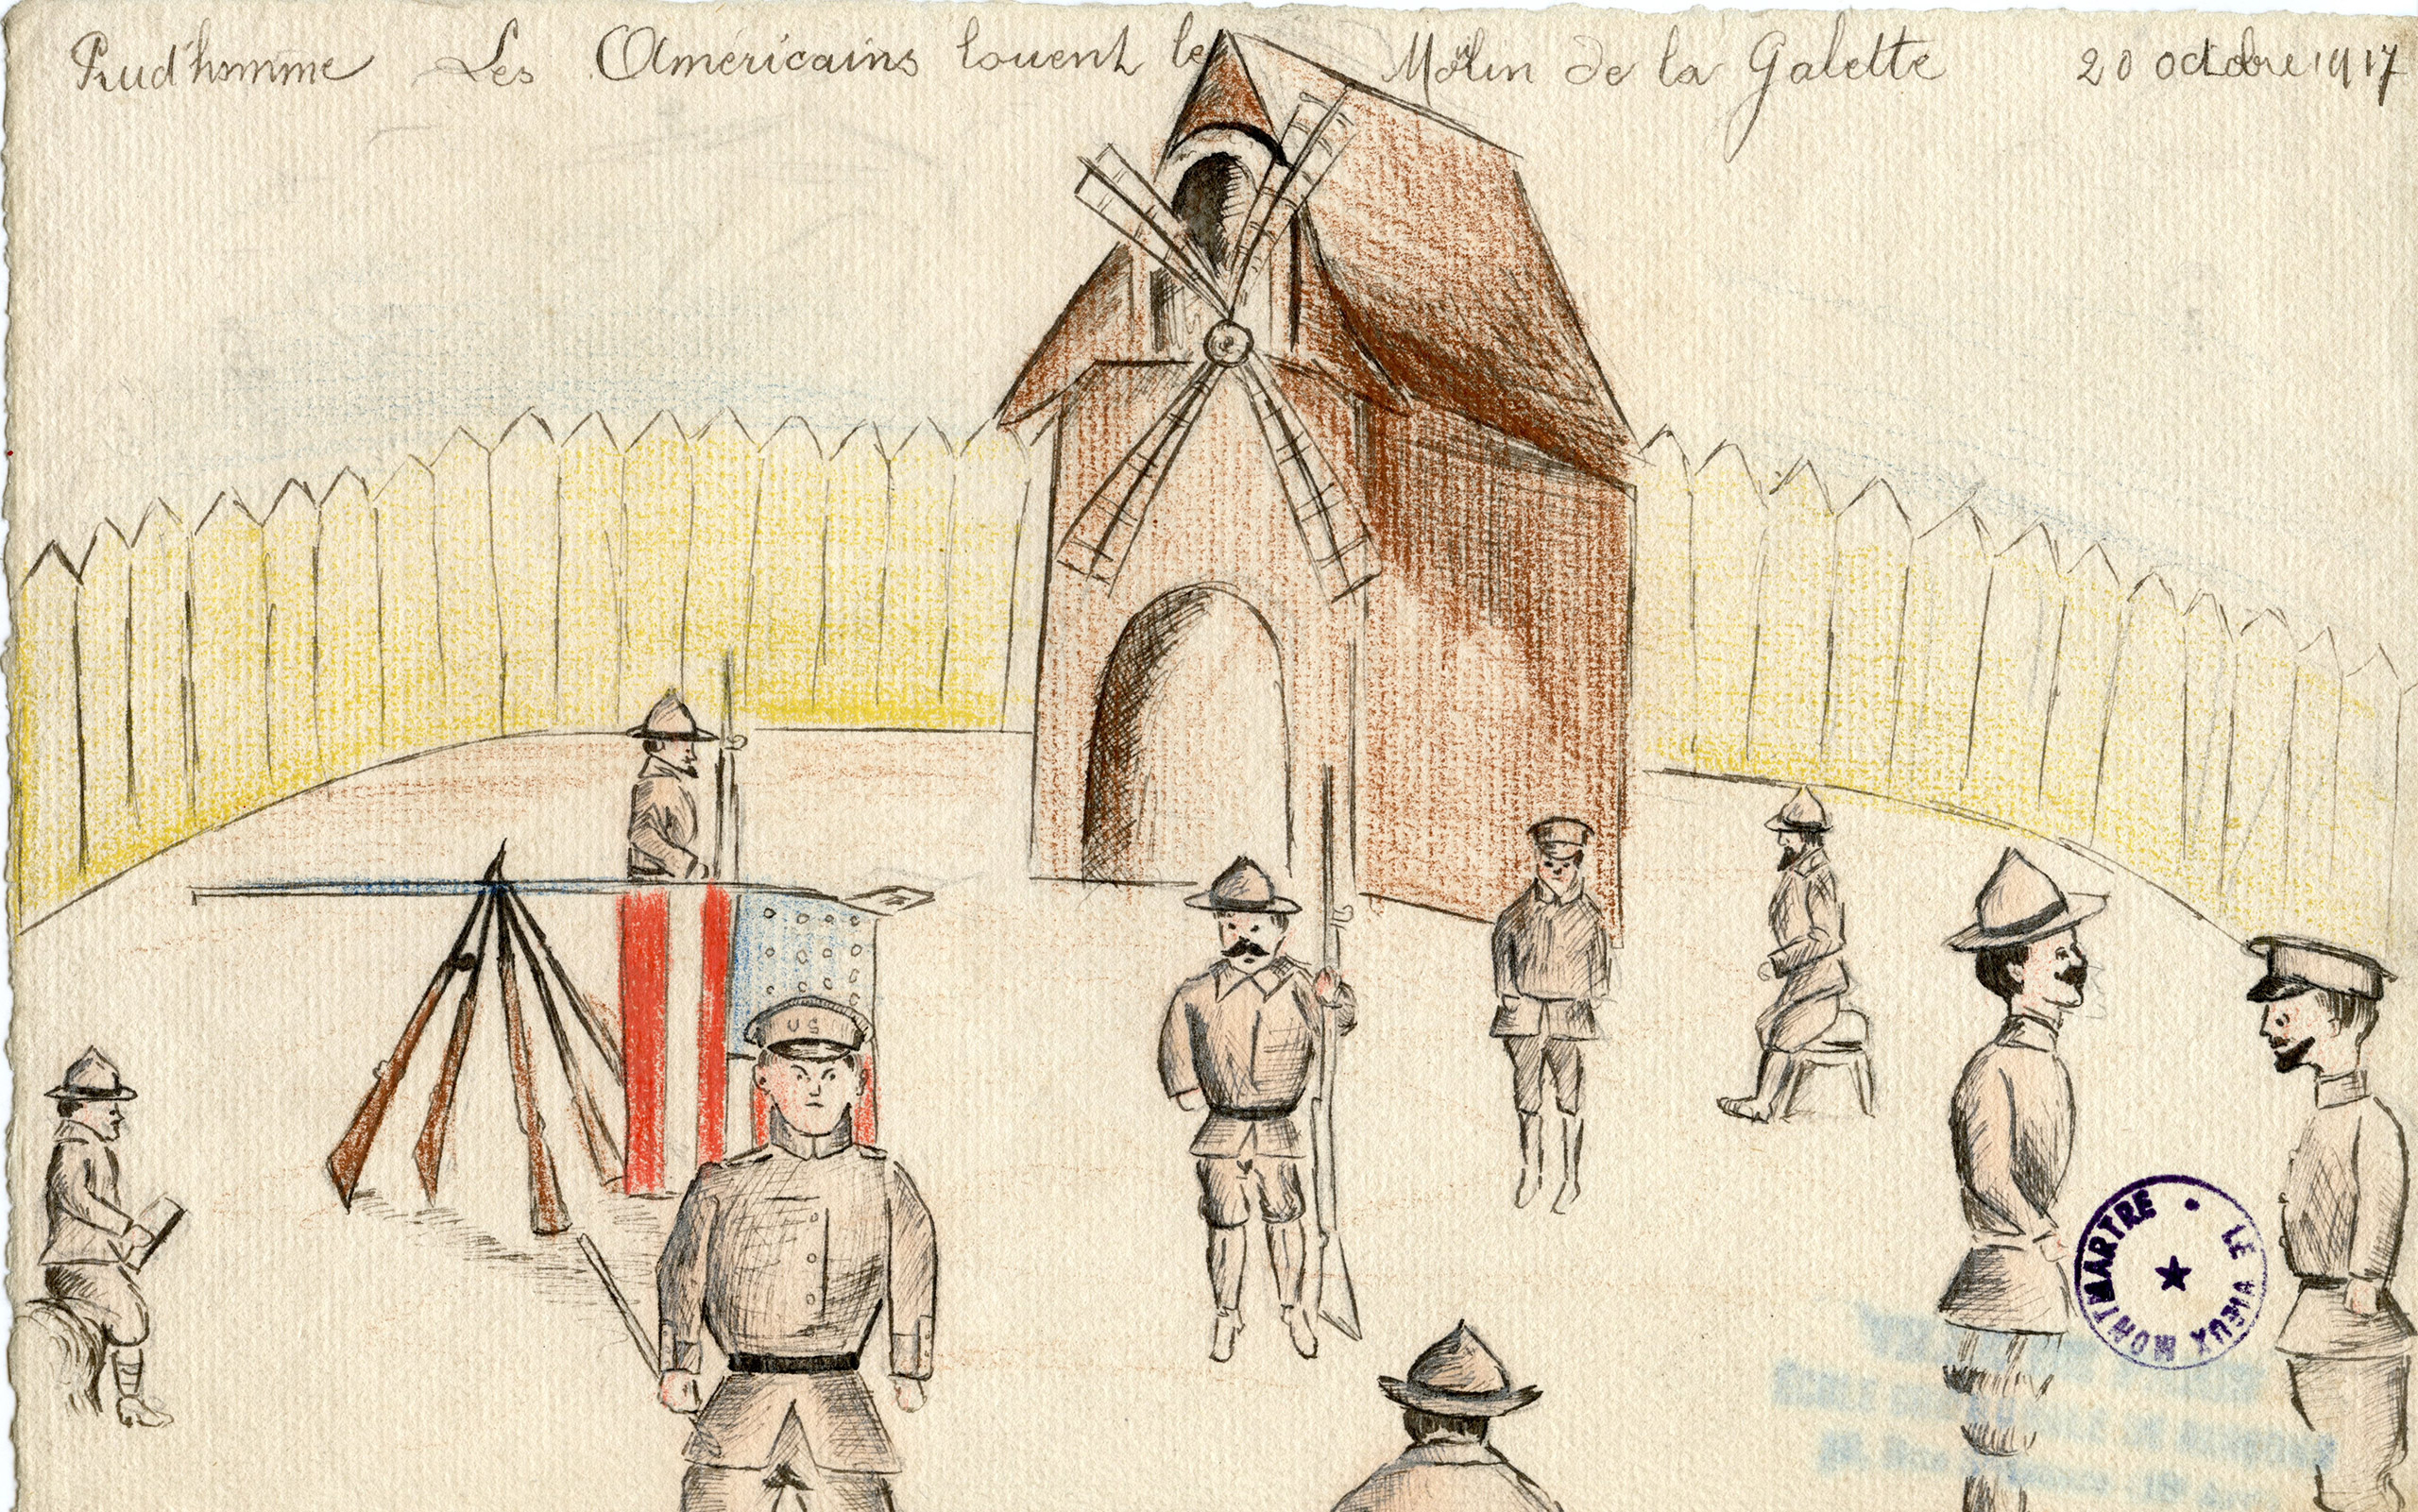 """This drawing depicts the famous Montmartre landmark, which speaks to how this child sought to personalize and imagine how his neighborhood played a pivotal role in the American soldiers' training. In a comical turn, the text states that the Americans have """"rented"""" the space."""